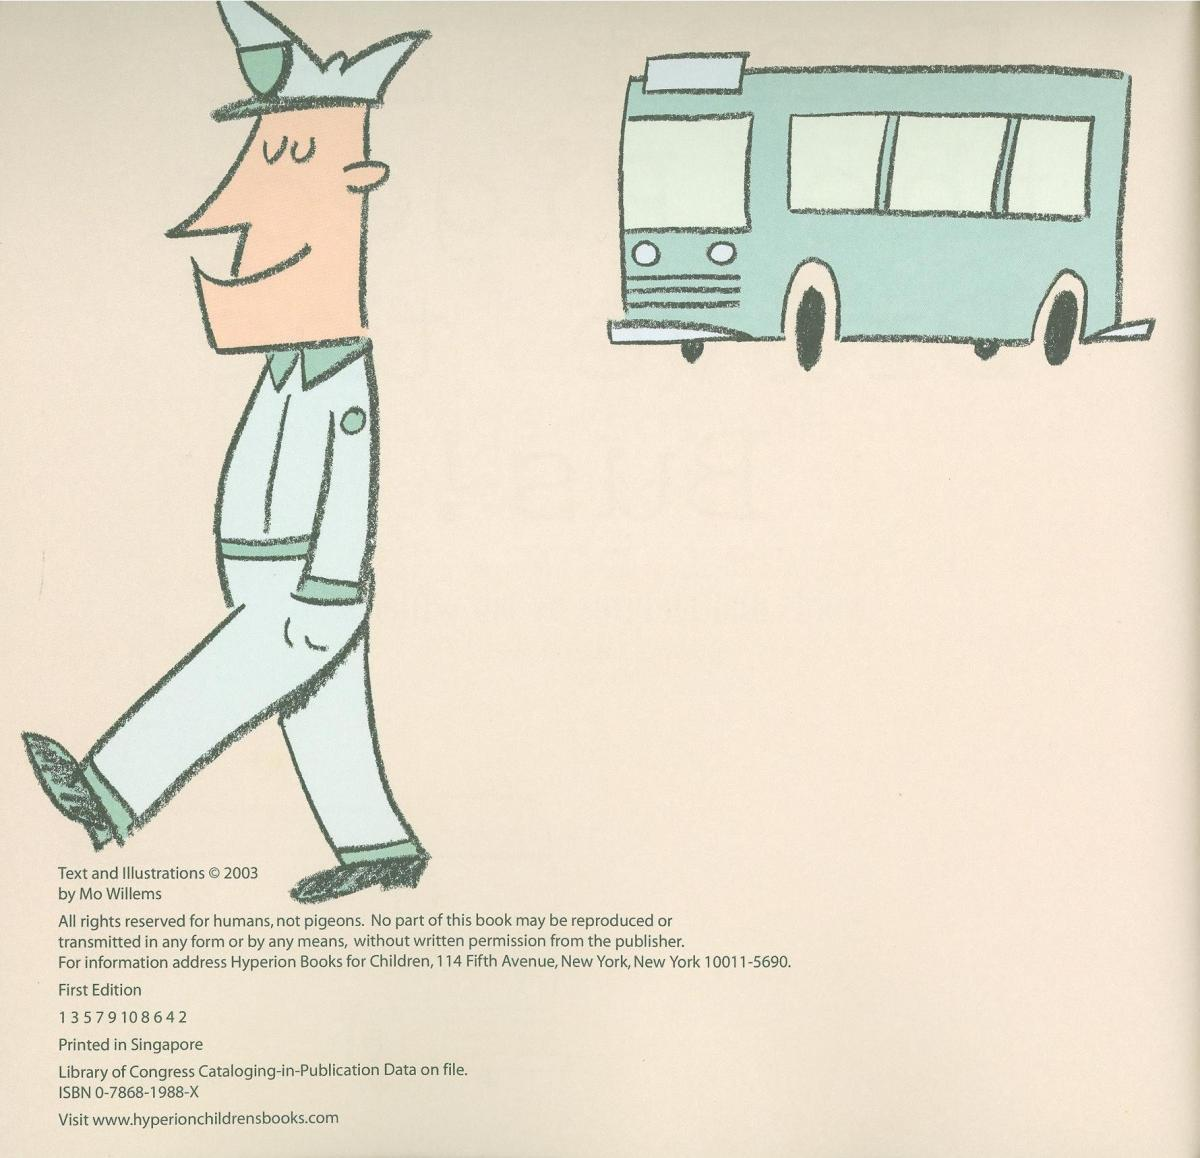 Don't Let the Pigeon Drive the Bus! - verso page